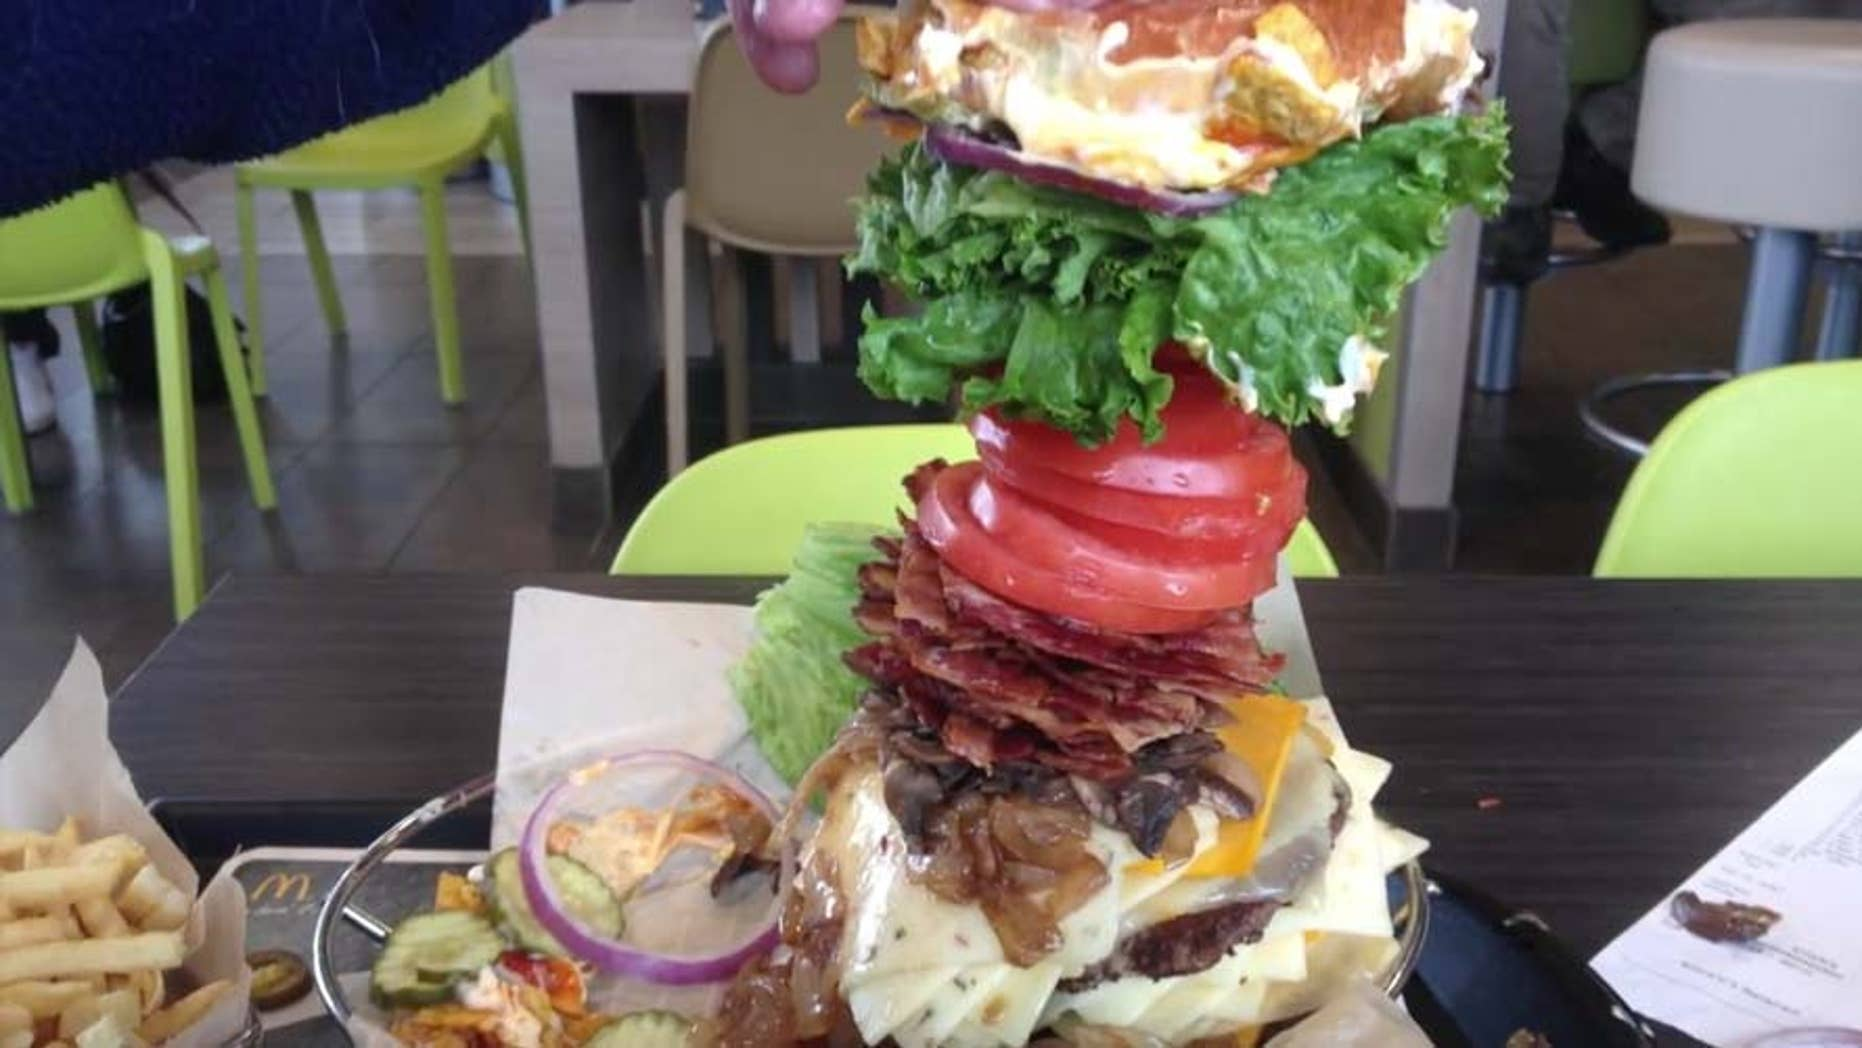 The Big Max burger towers above the competition.